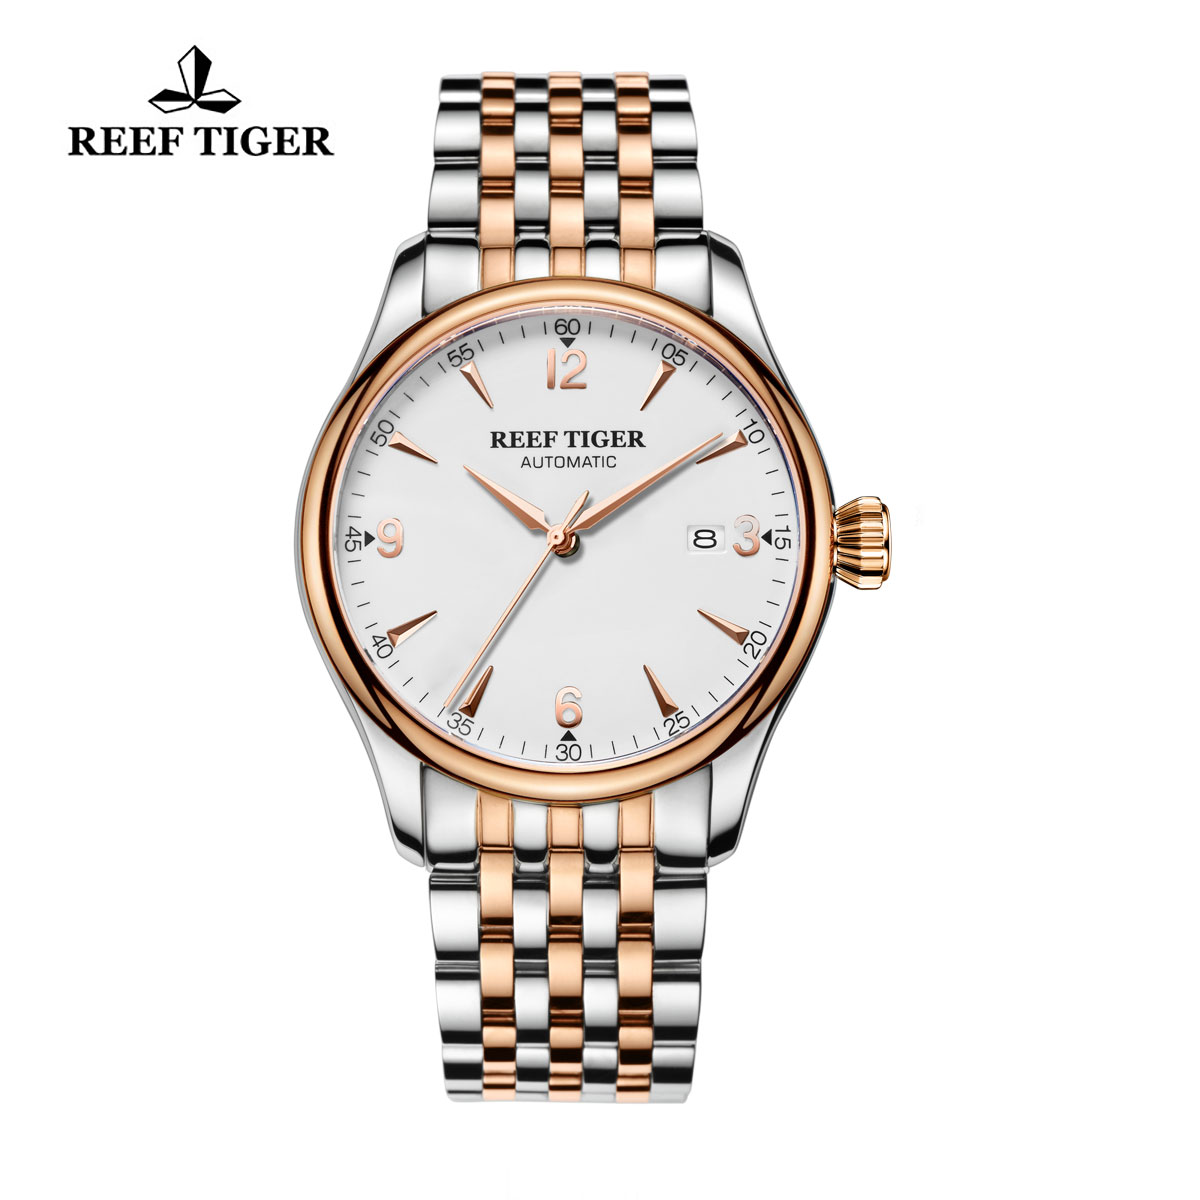 Reef Tiger Dress Automatic Watch White Dial Two Tone Case RGA823G-PWT